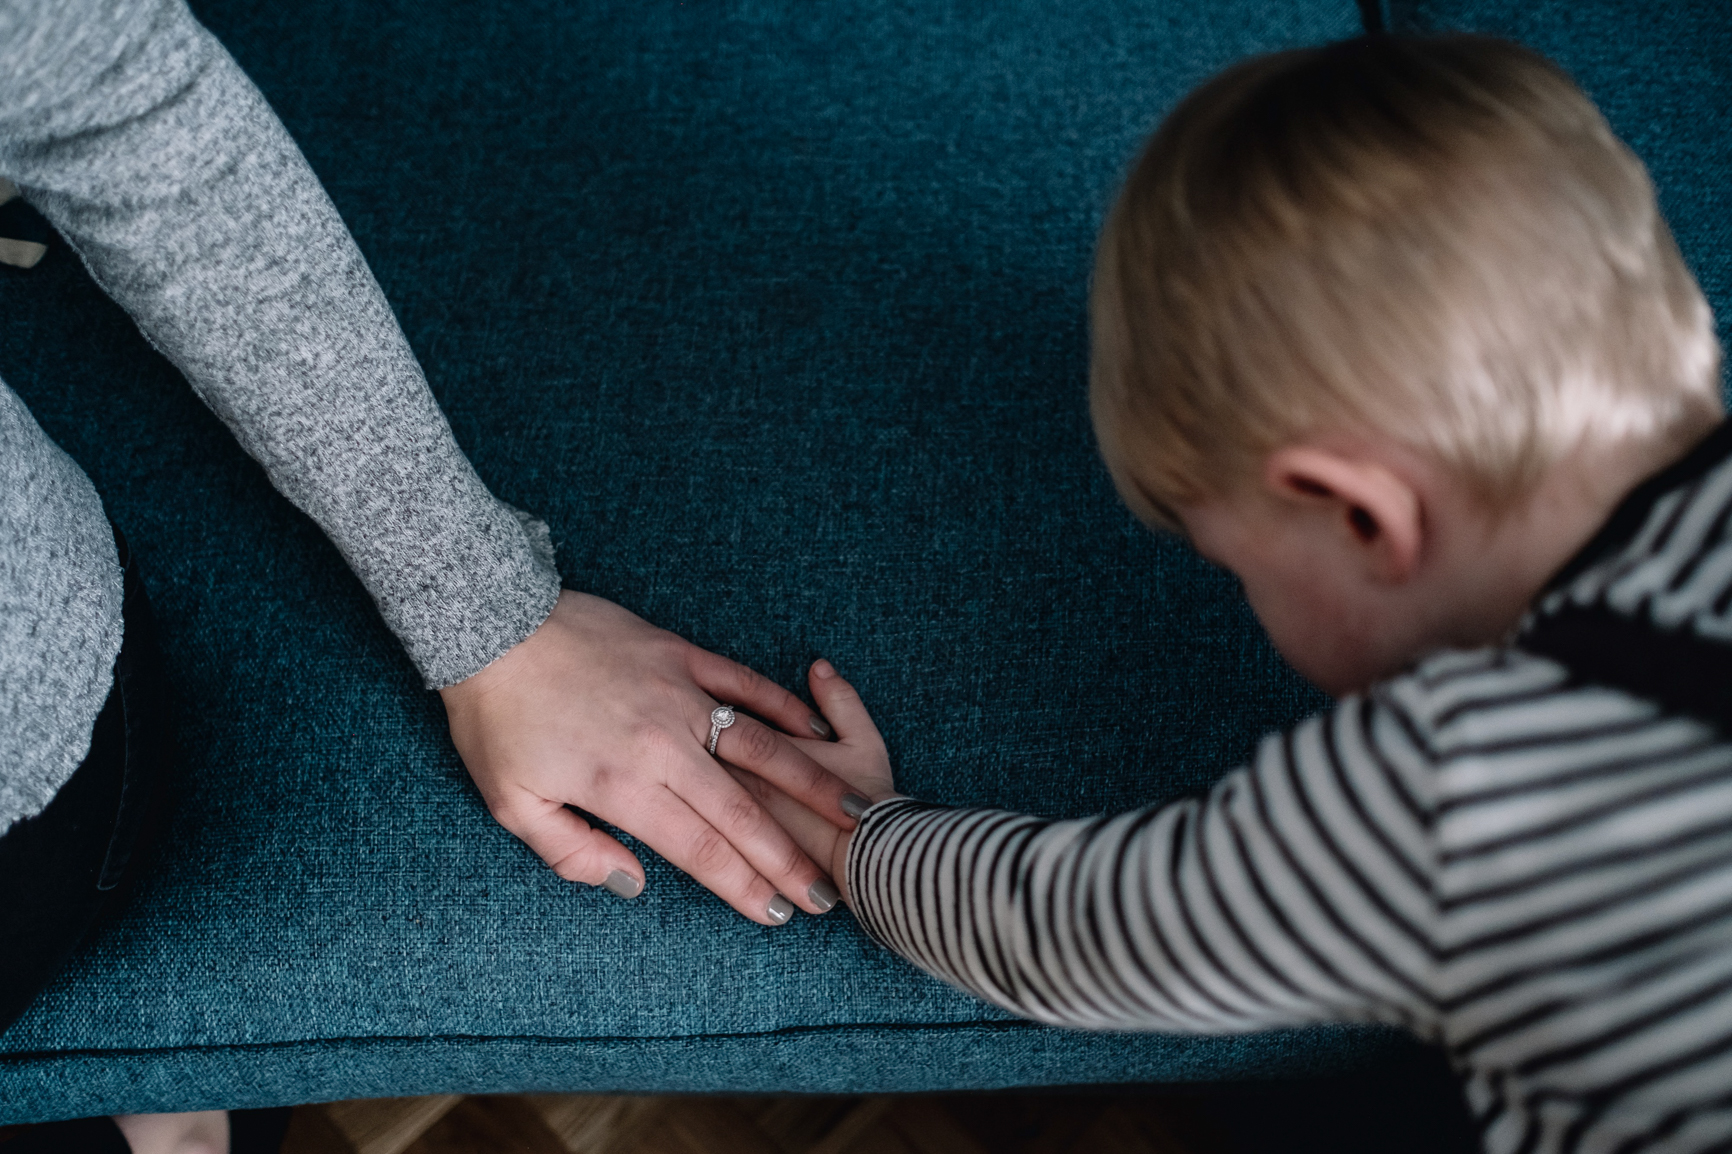 Boy's hand on blue sofa and mother's hand is on top.